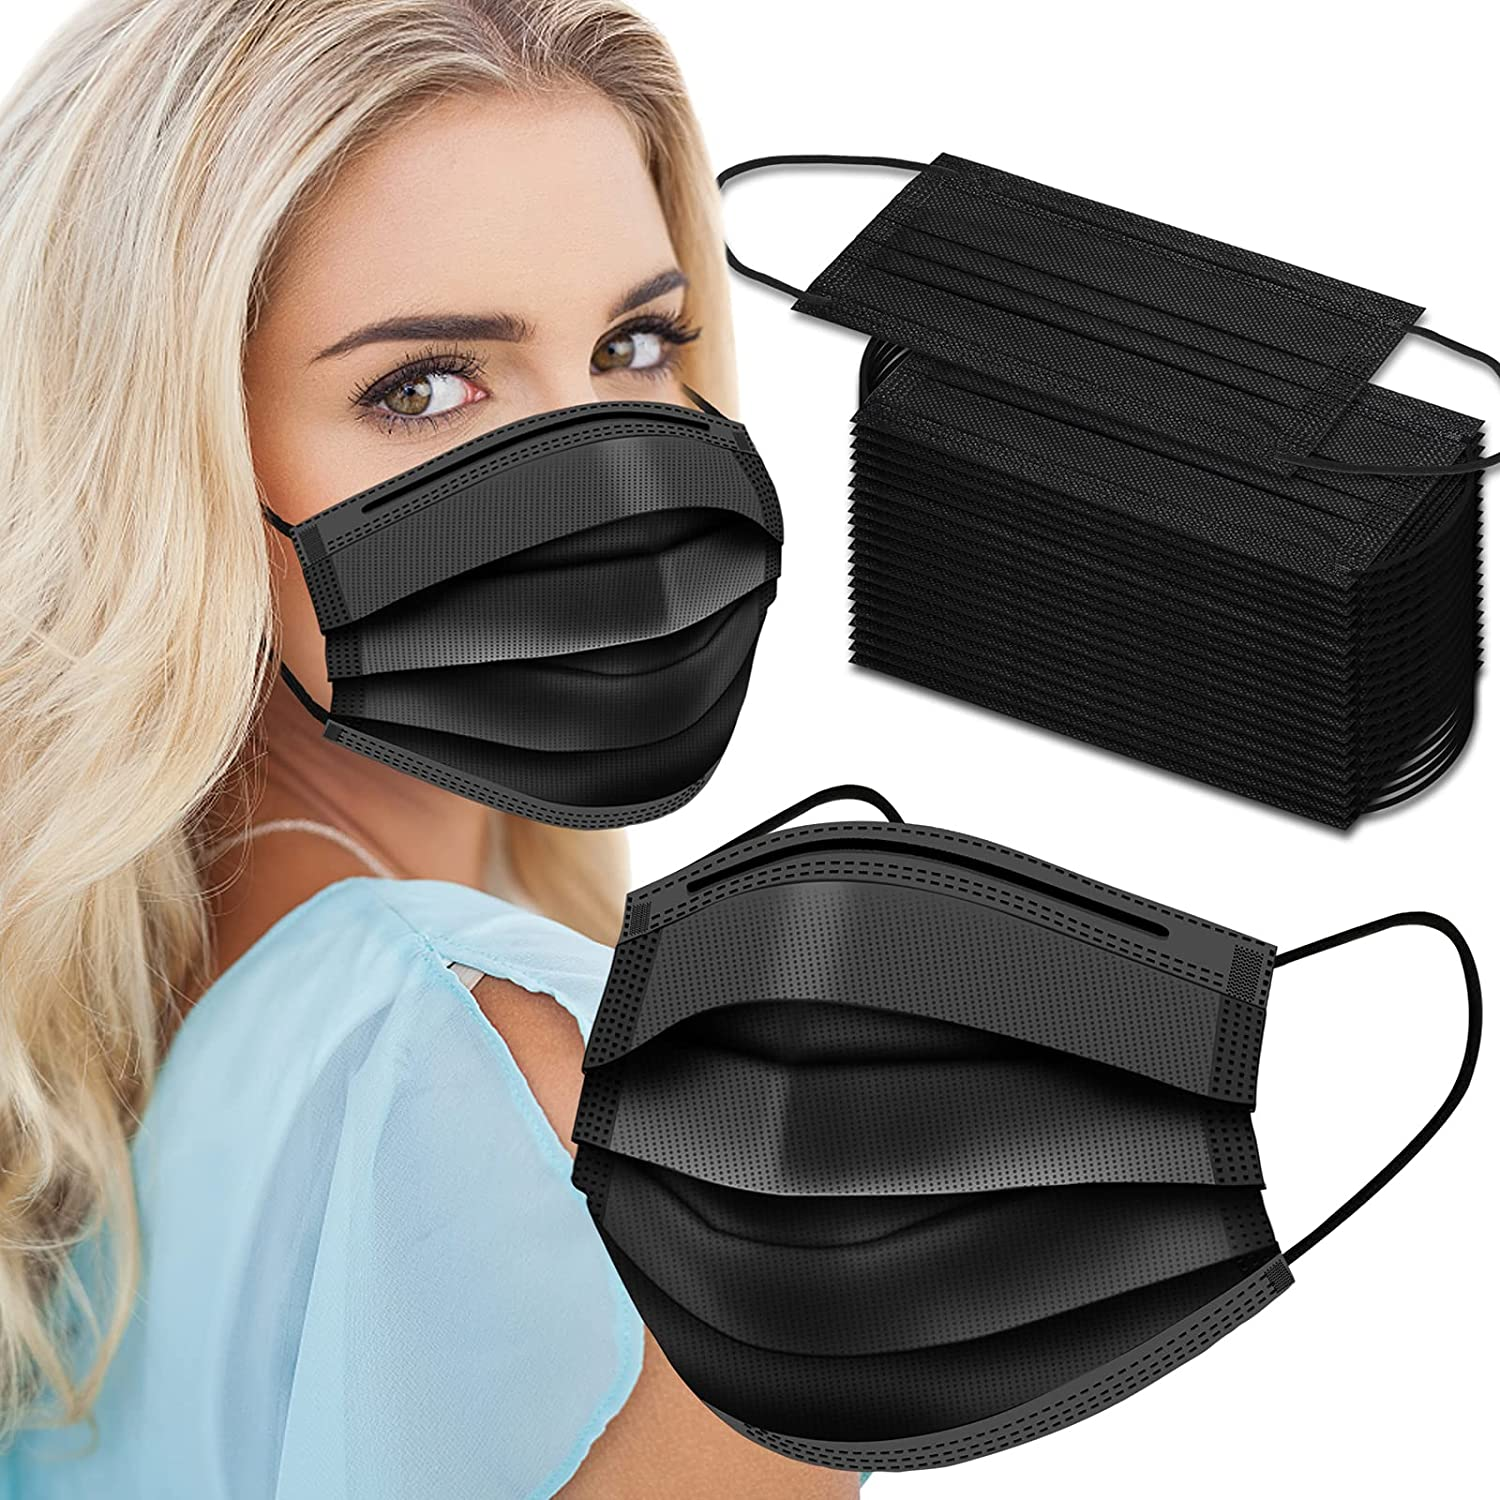 Black Disposable Face Masks 50 excellence Ply Mask 3 Pack Direct stock discount